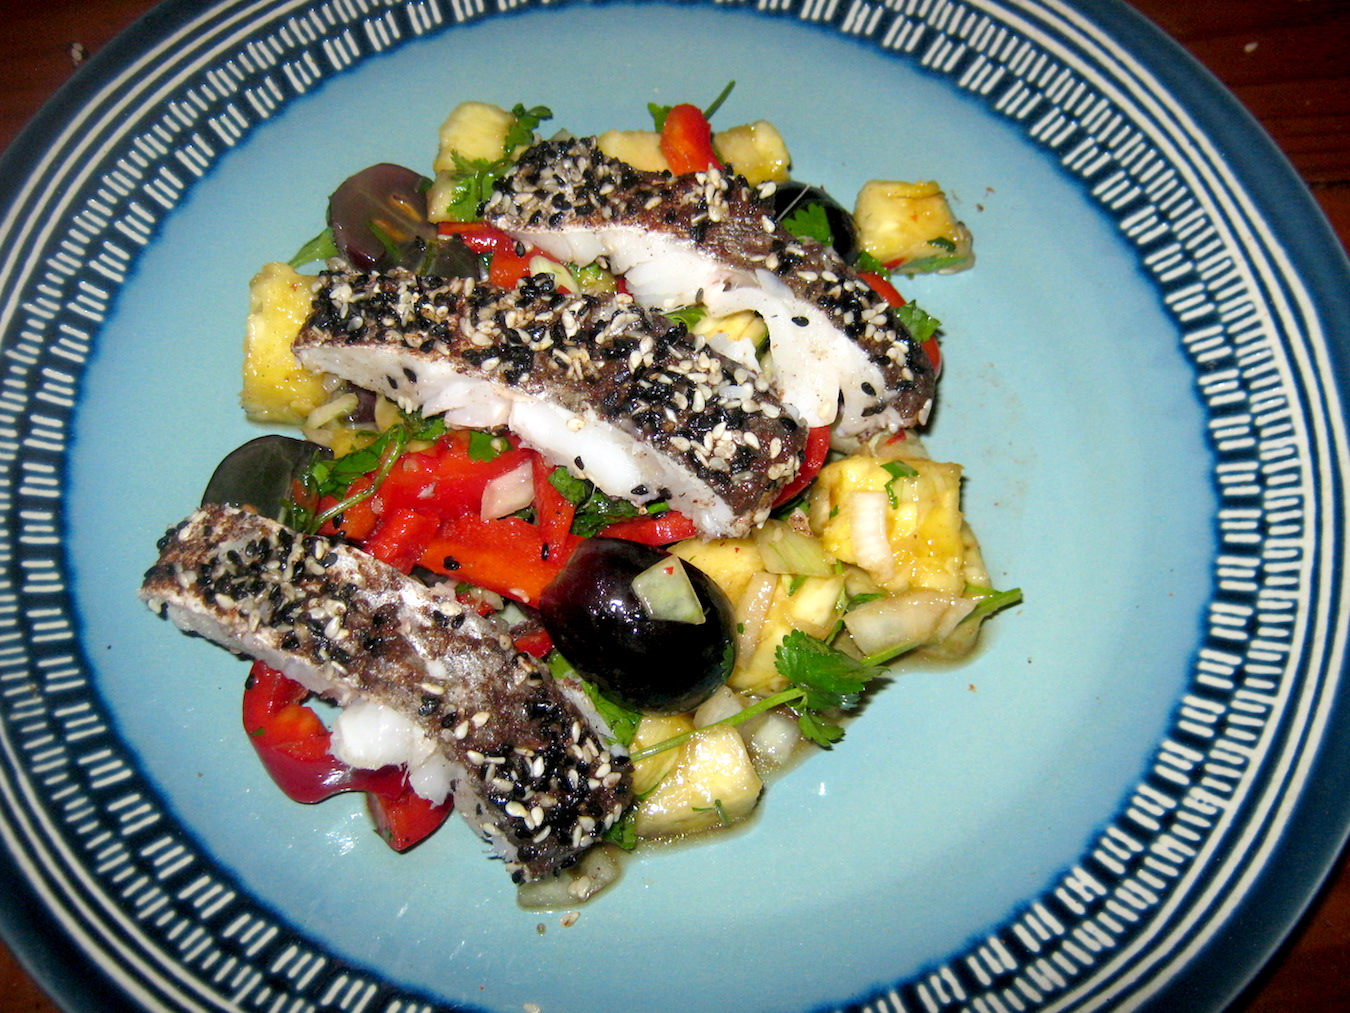 Hake in cinnamon sesame crust on pineapple chilli grape salad